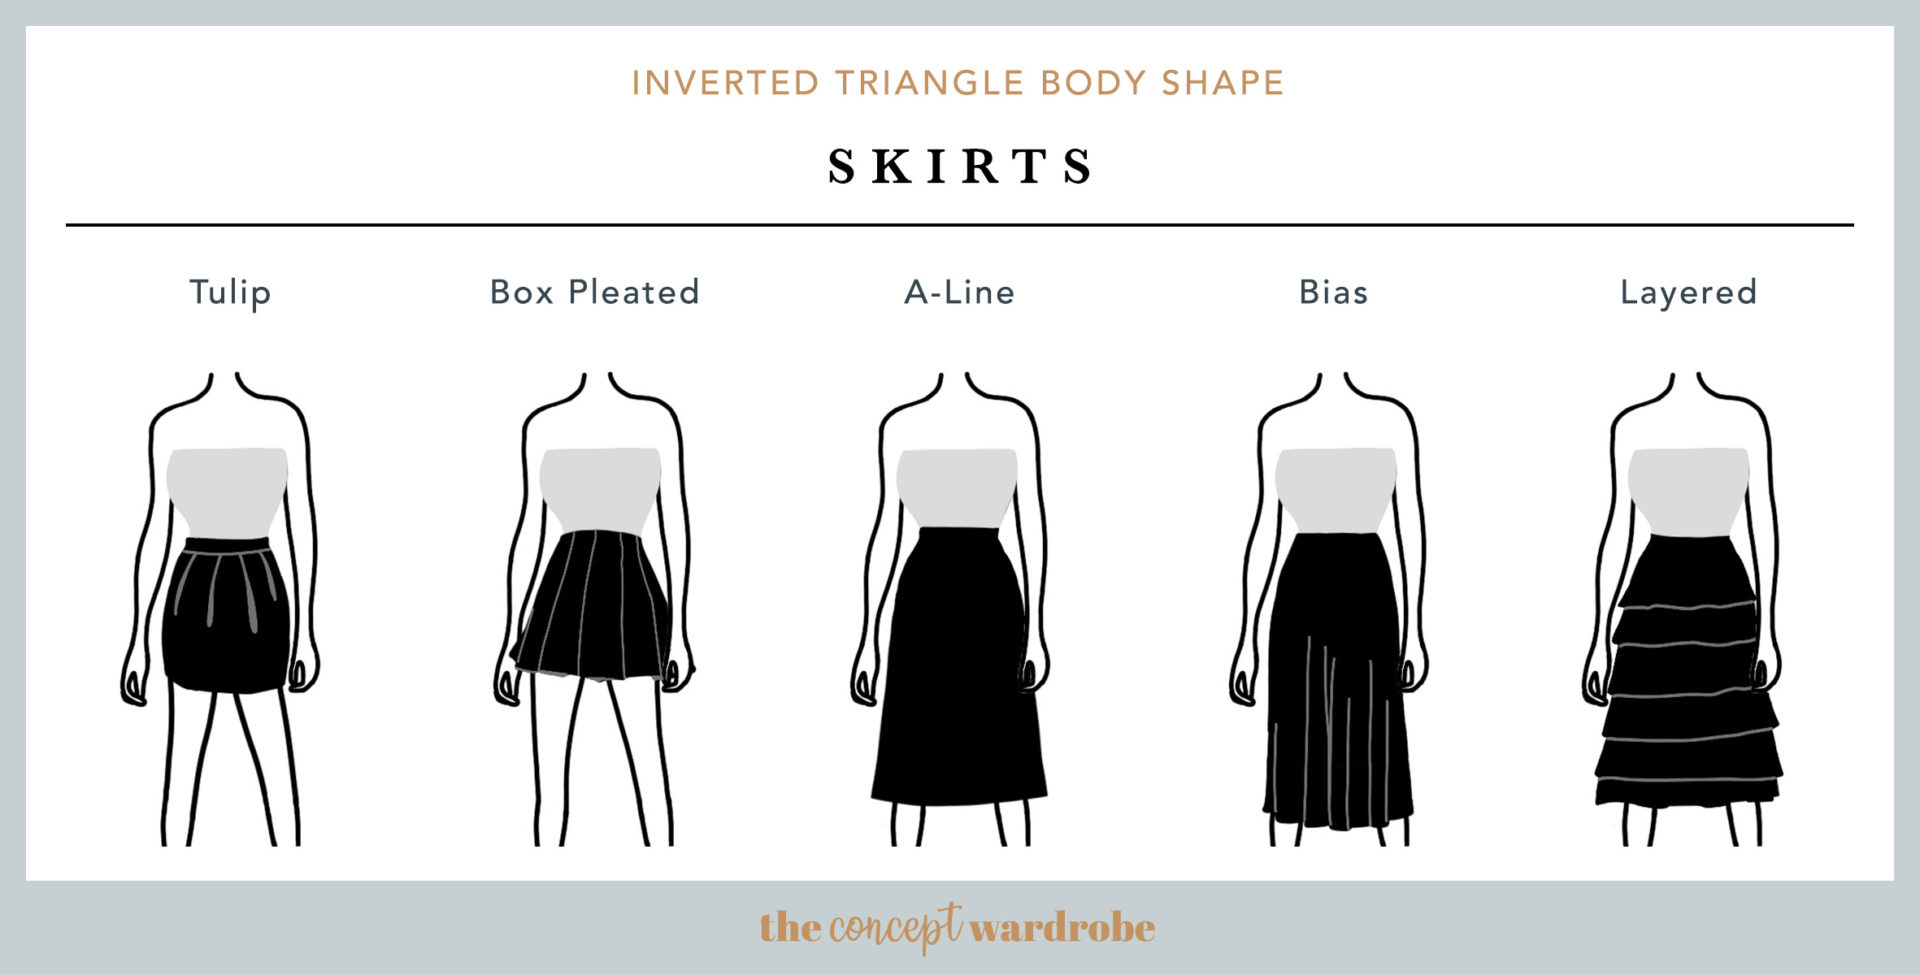 Inverted Triangle Body Shape Skirts - the concept wardrobe